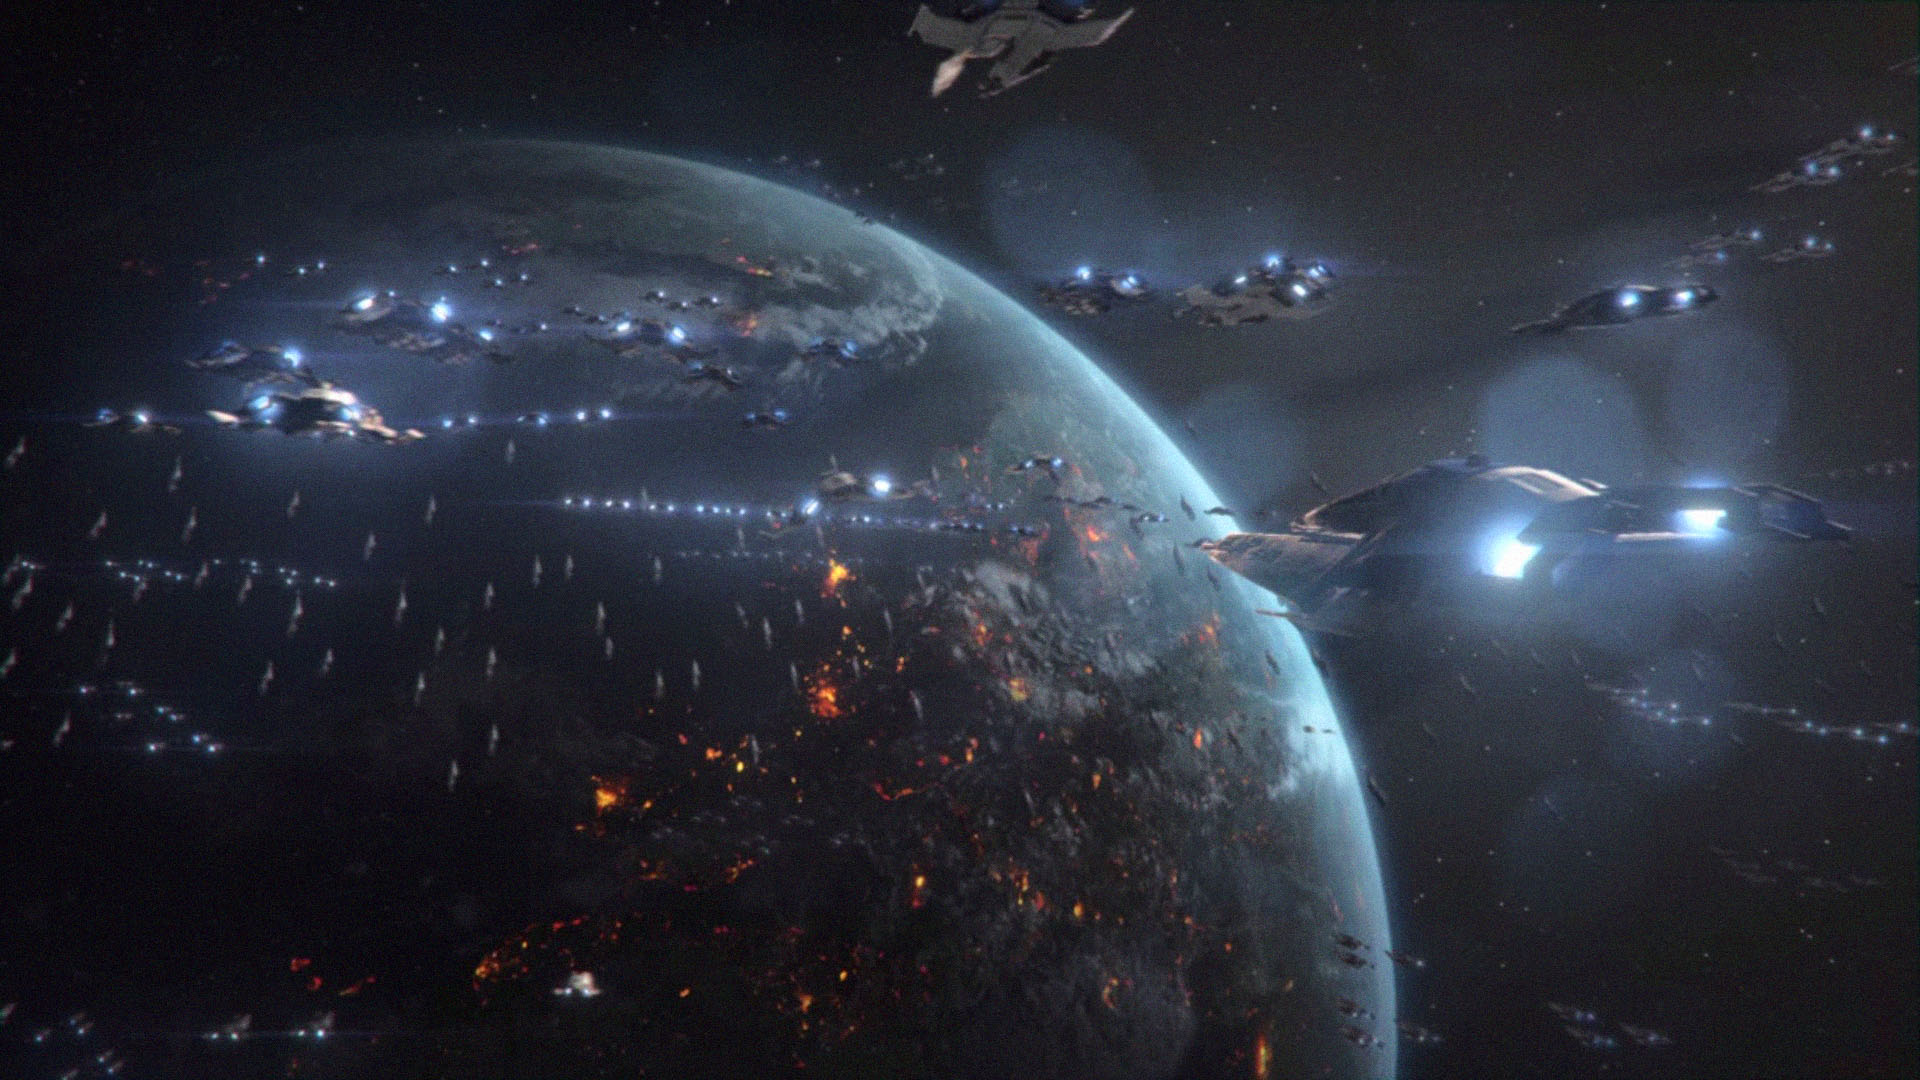 Spaceship Battle Wallpaper Hd space battle wallpapers to 1920x1080